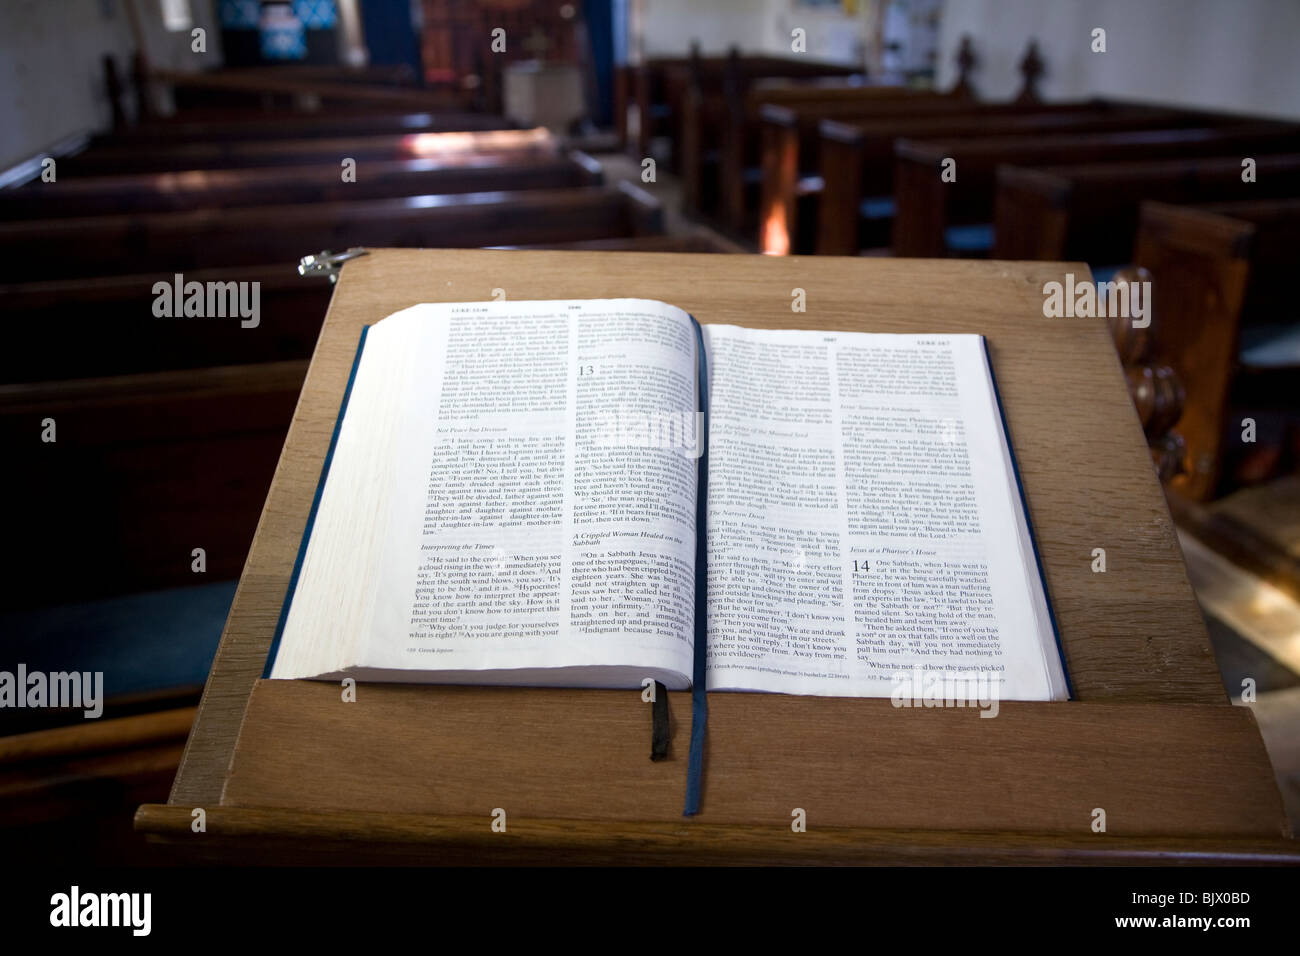 Open bible book on lectern in small empty church All Saints and St Margaret's church, Chattisham, Suffolk - Stock Image